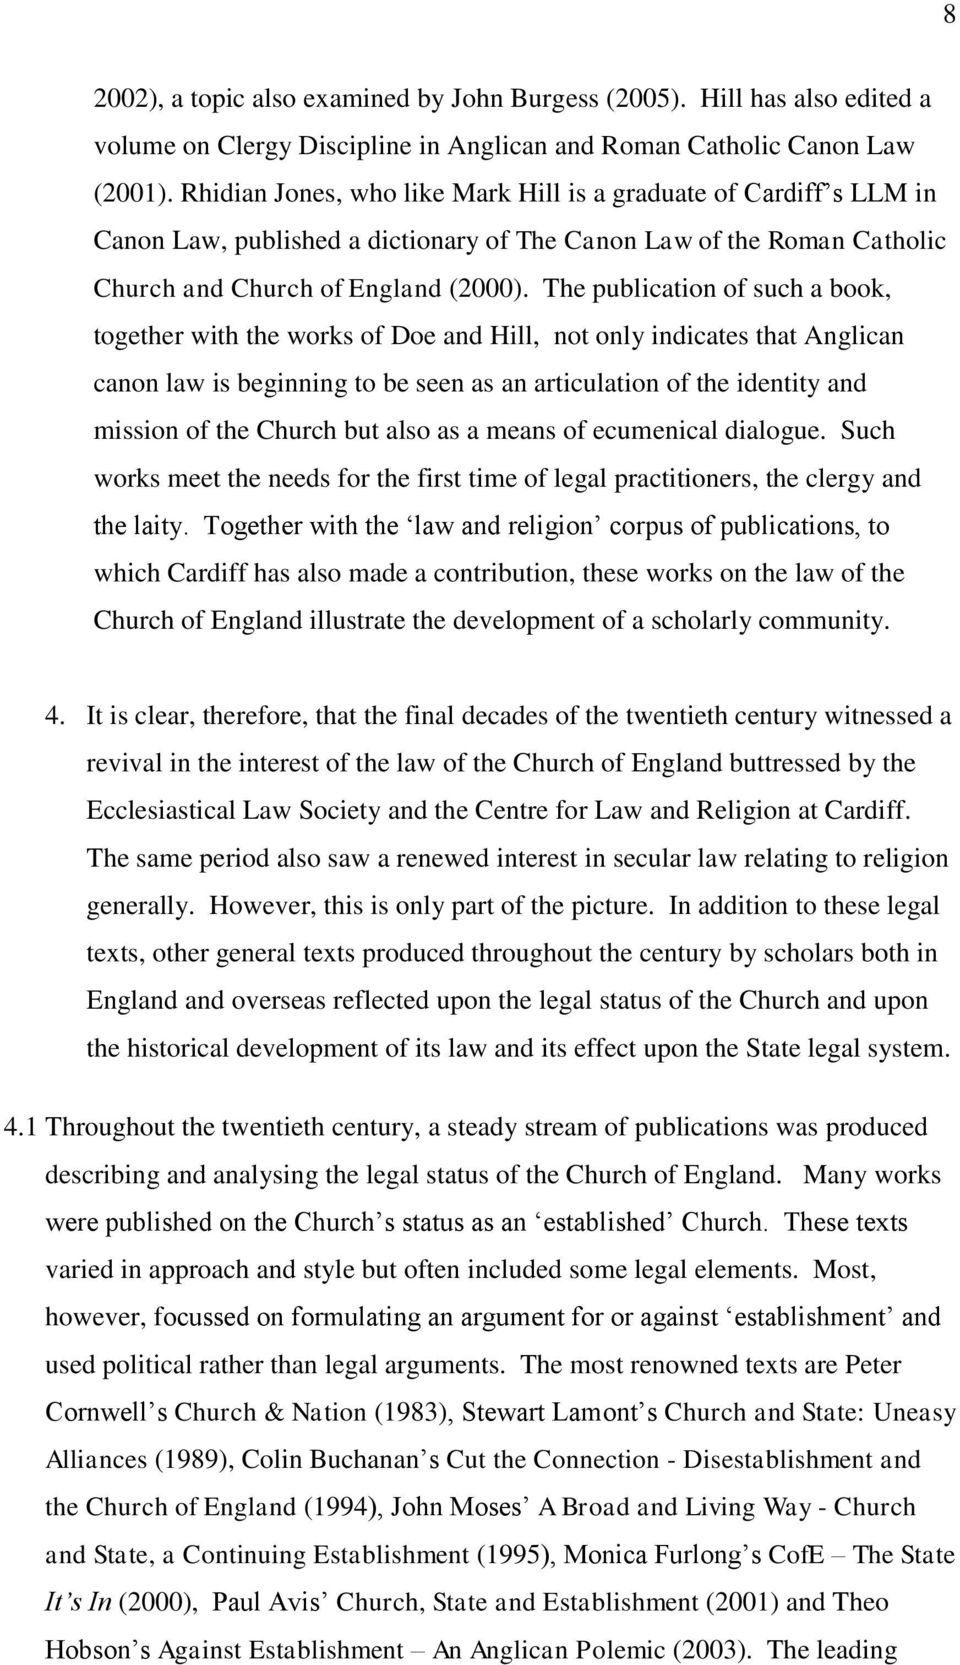 The publication of such a book, together with the works of Doe and Hill, not only indicates that Anglican canon law is beginning to be seen as an articulation of the identity and mission of the